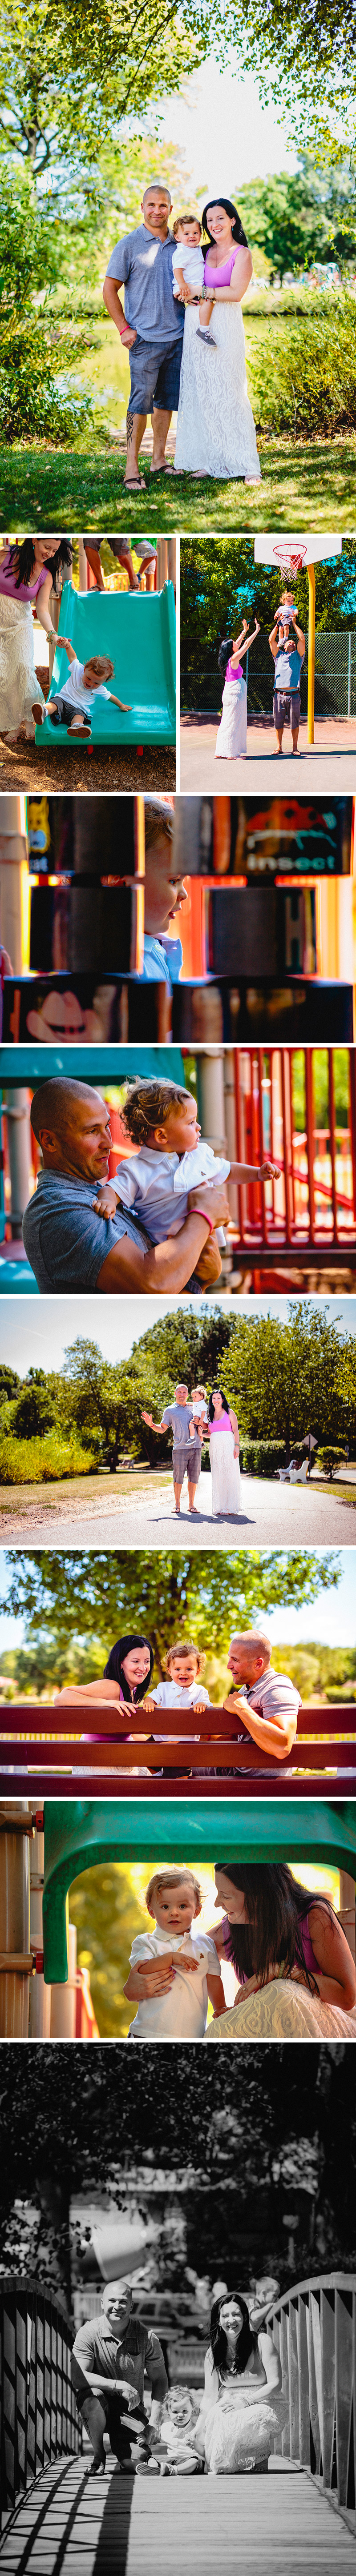 Newman family portraits in Edison, New Jersey